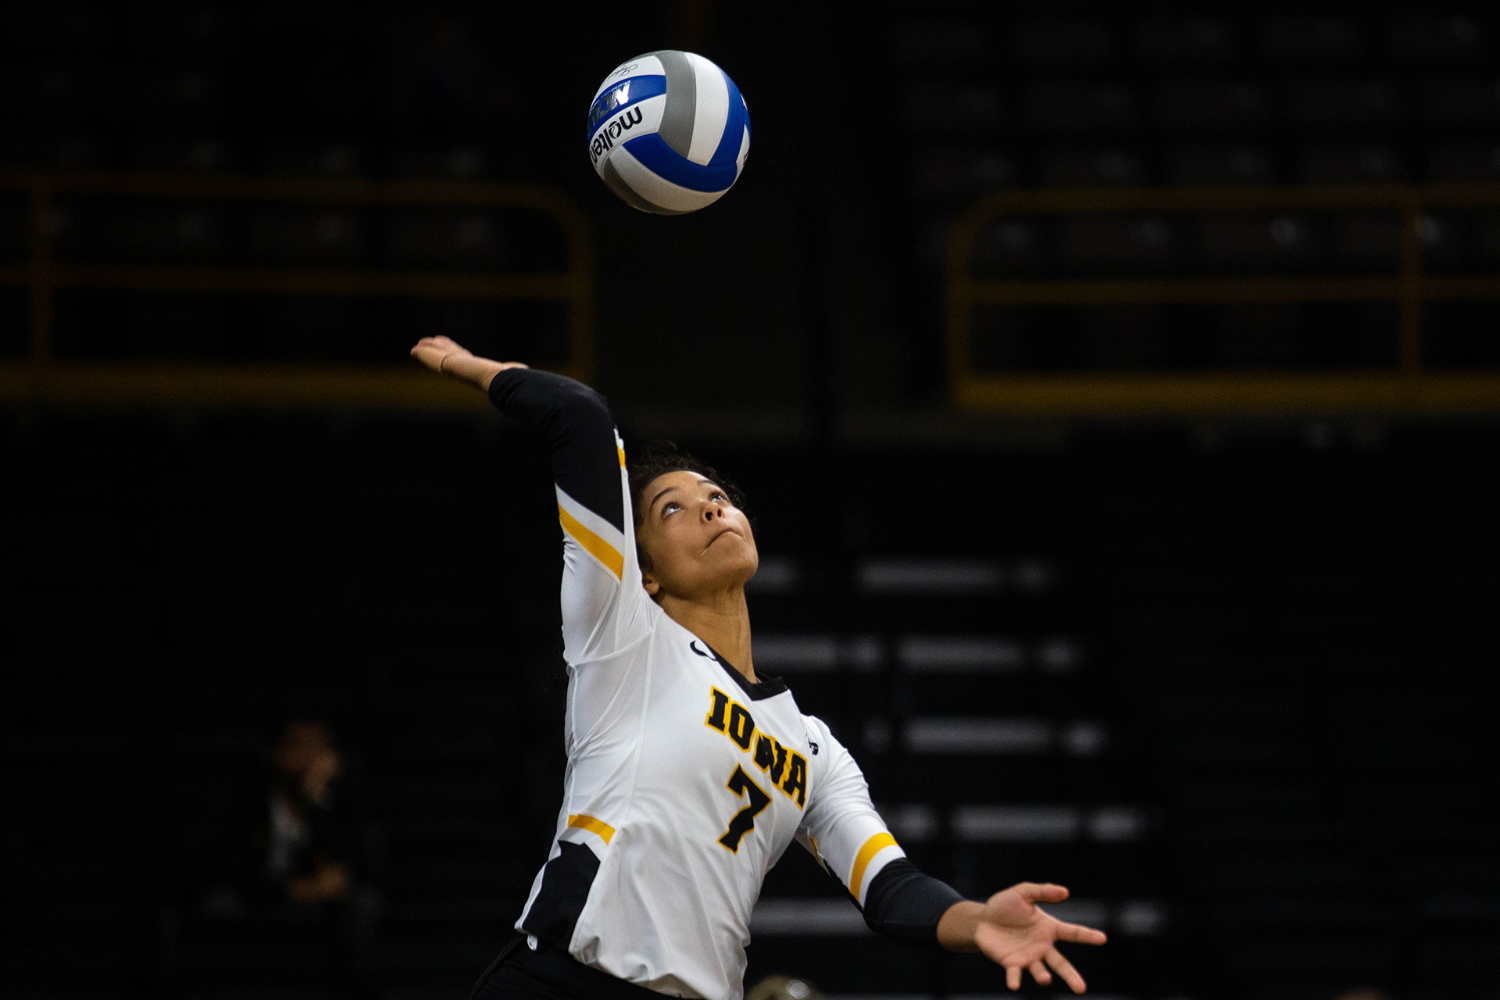 Brie Orr serves the ball during Iowa's match against Eastern Illinois on Sunday, September 9, 2018 at Carver-Hawkeye Arena. The Hawkeyes won the match 3-0.(Megan Nagorzanski/ The Daily Iowan)